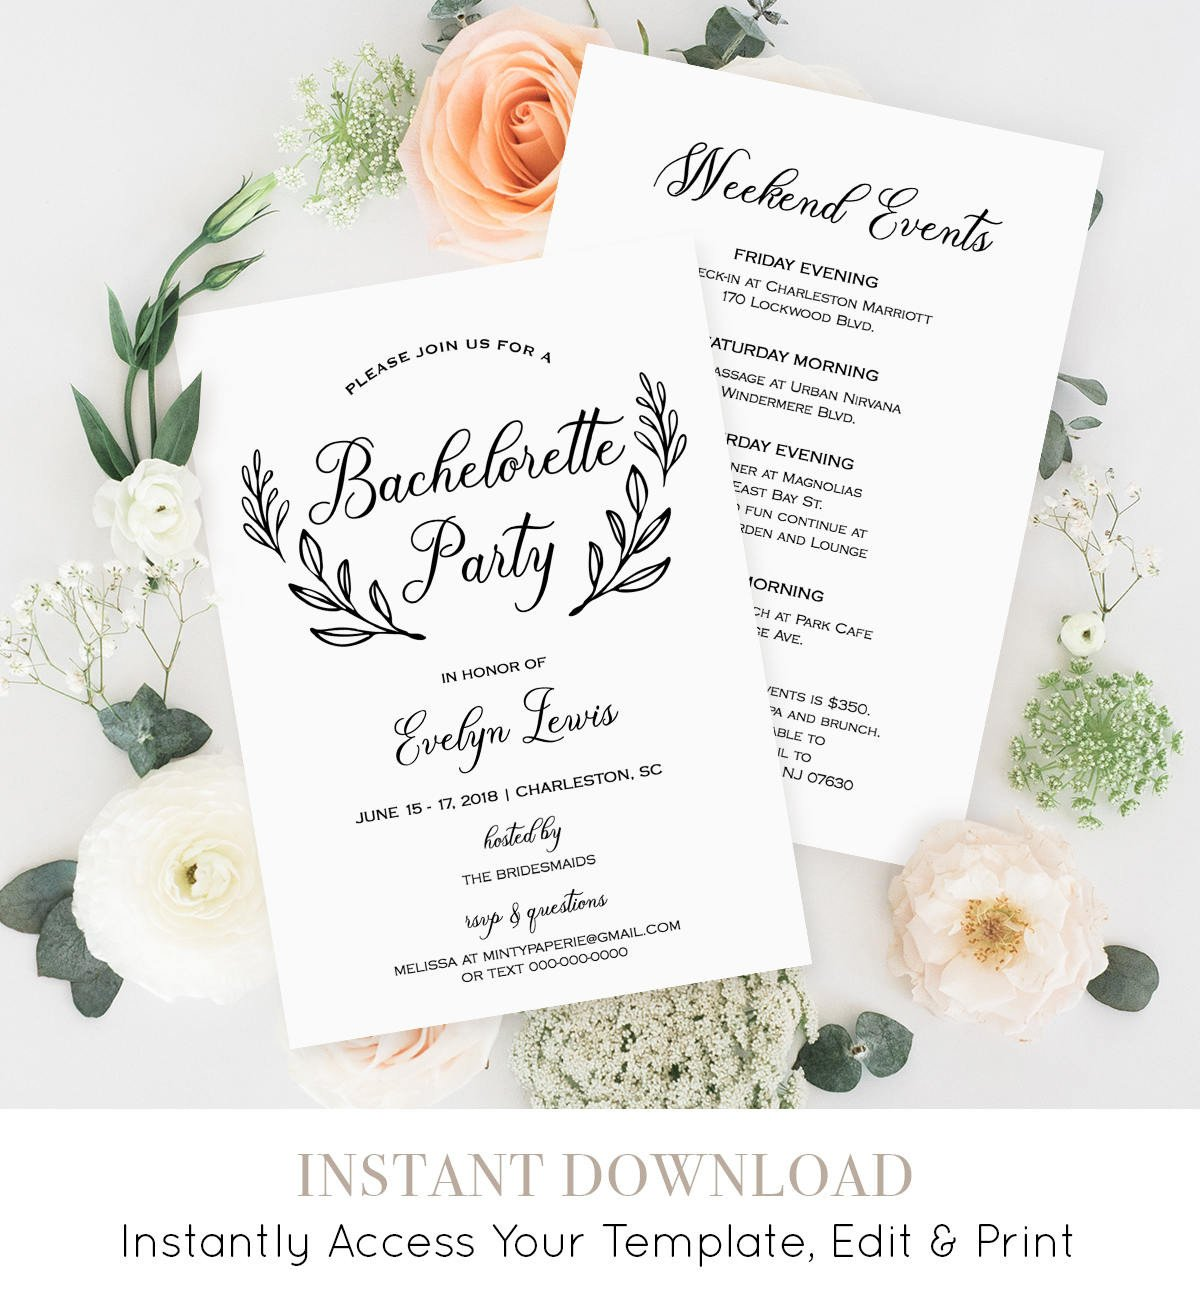 Bachelorette Itinerary Template Free Bachelorette Party Invitation Template Printable